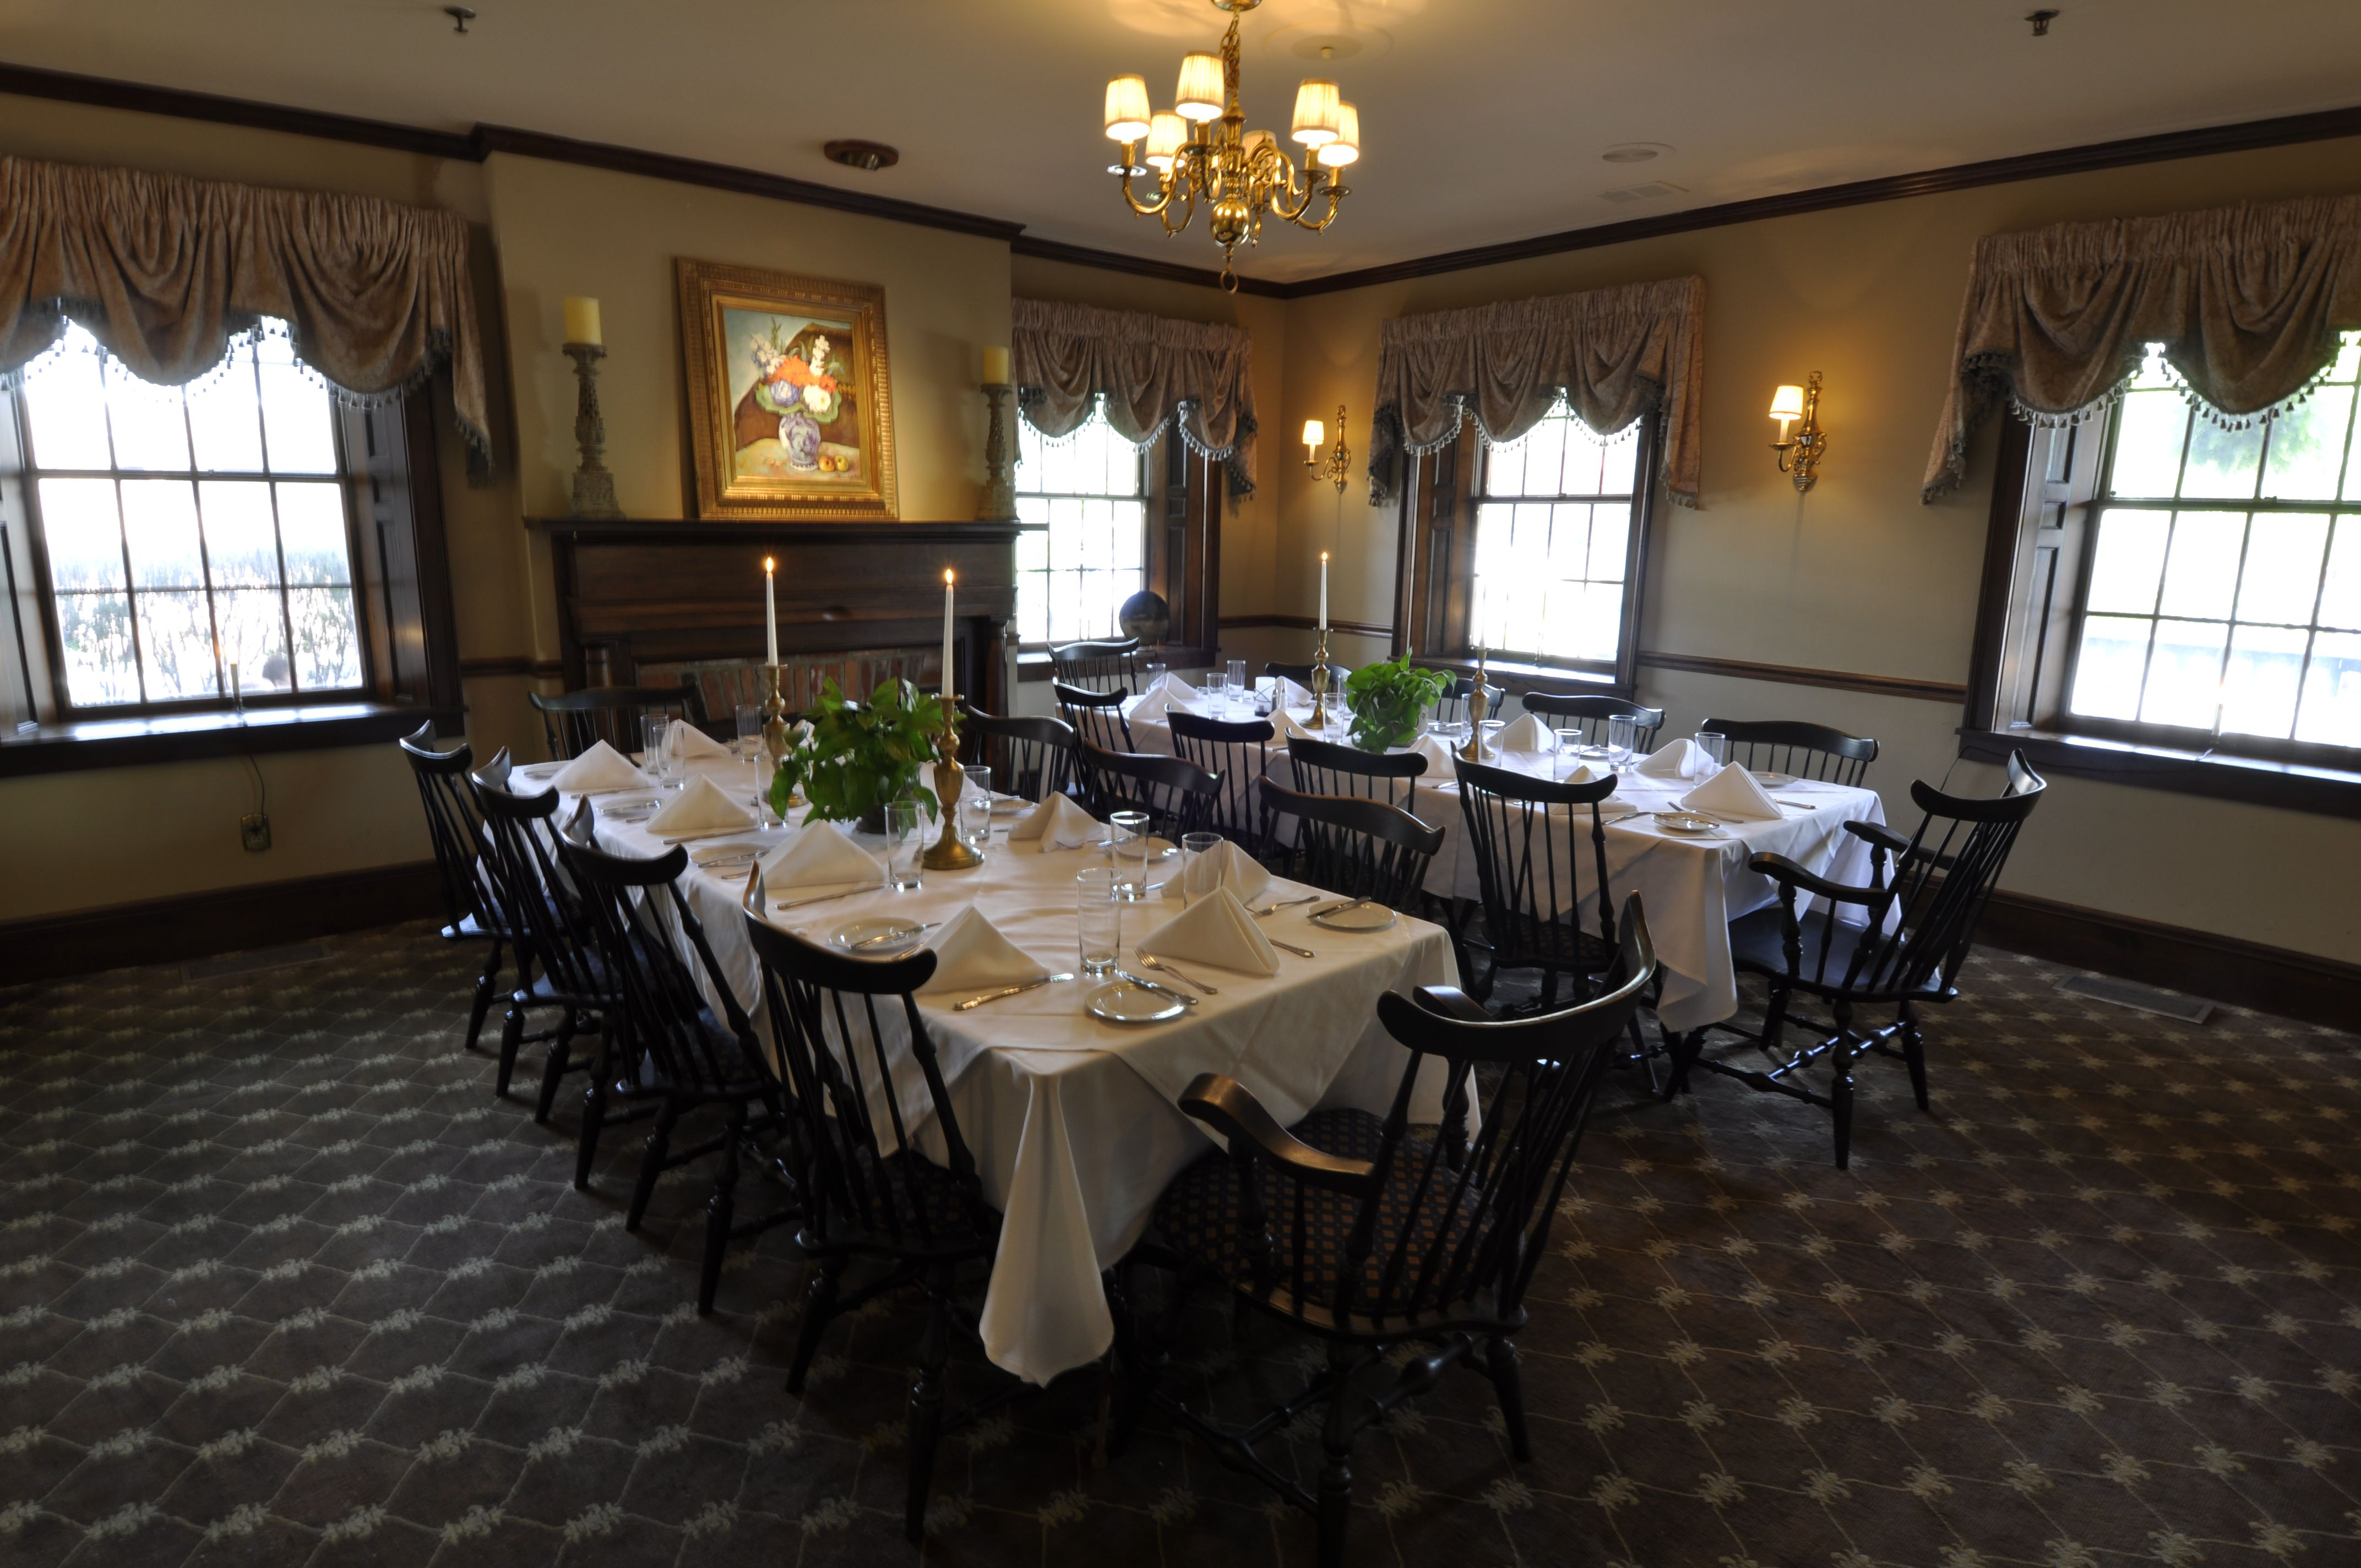 The Formal Room